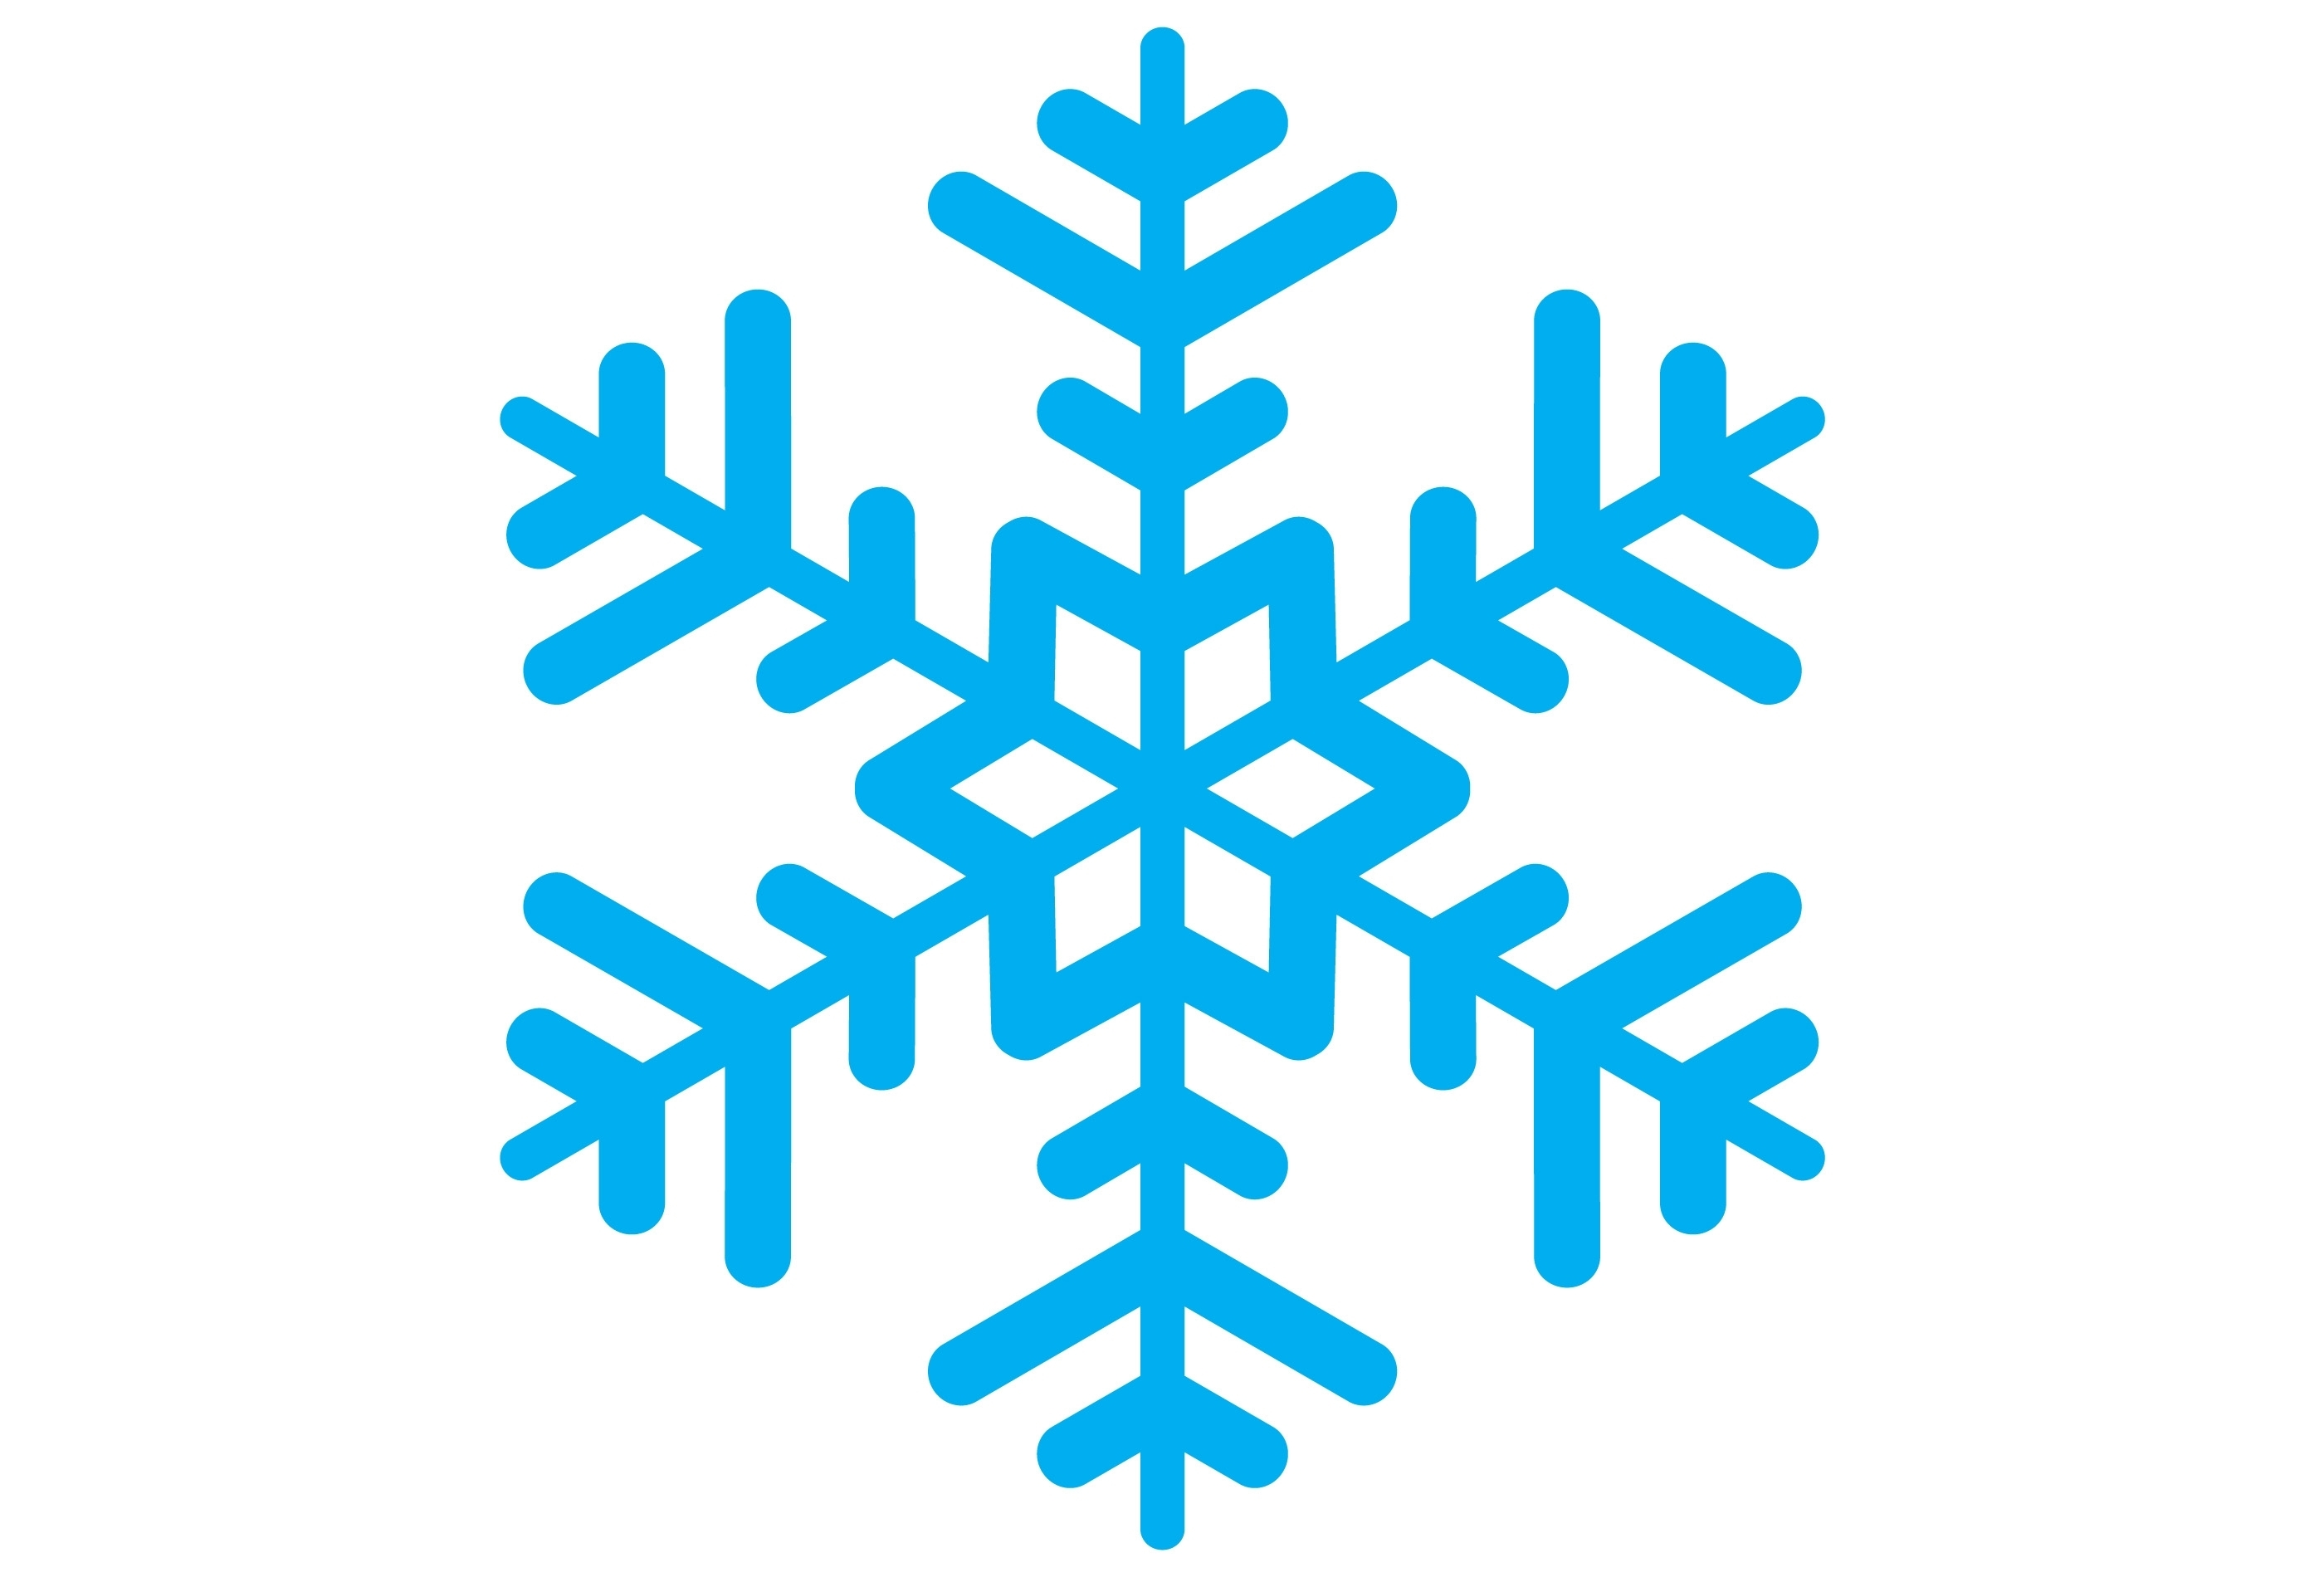 Snowflake clipart, Snowflake Transparent FREE for download on  WebStockReview 2020